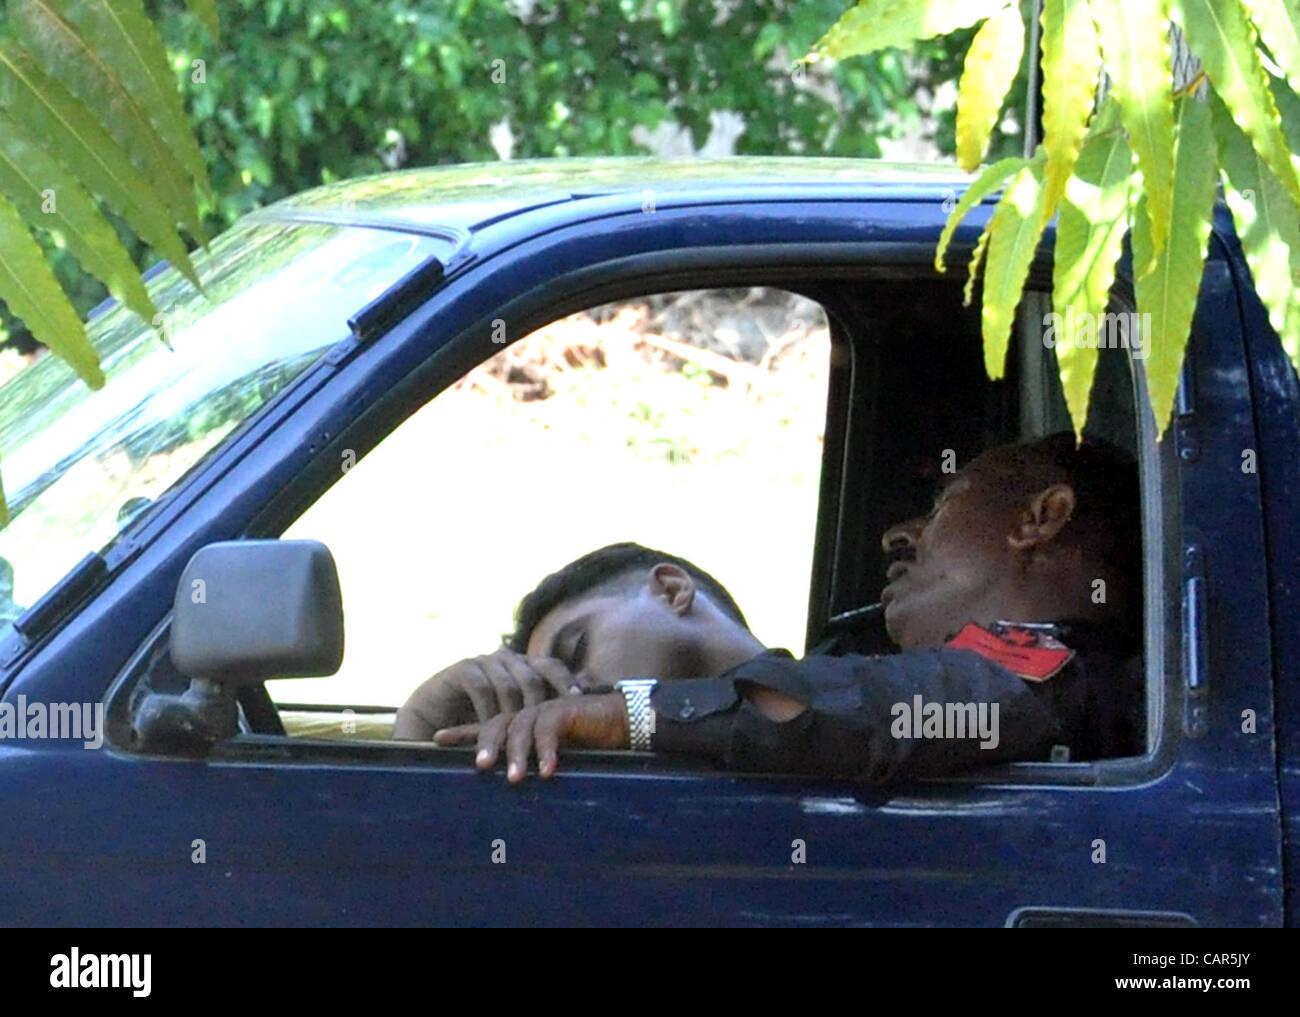 Policemen take nap in police mobile during duty at Royal Palm club in Lahore on Wednesday, April 11, 2012. - Stock Image